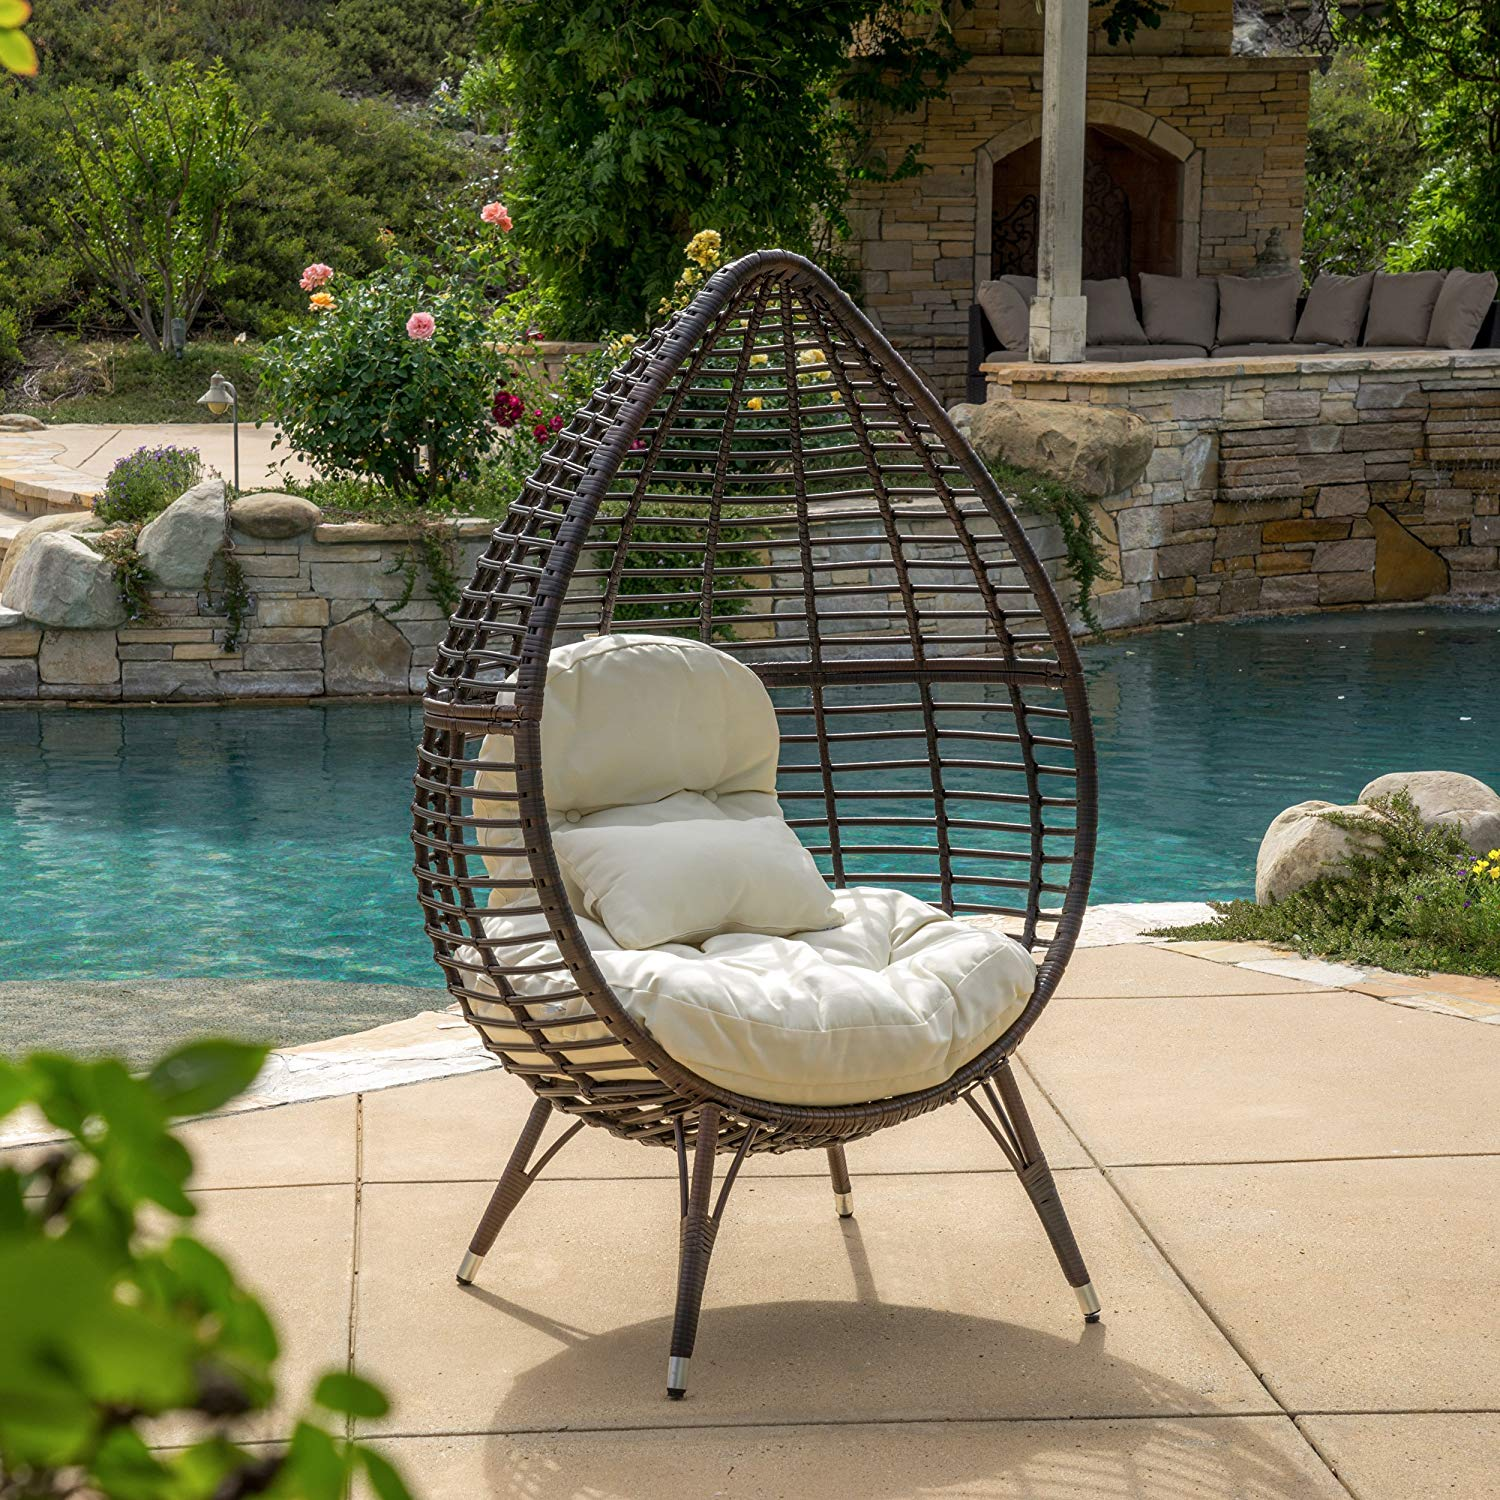 Christopher Knight Home 295805 Dermot Multibrown Wicker Lounge Teardrop Chair w/Cushion, Brown